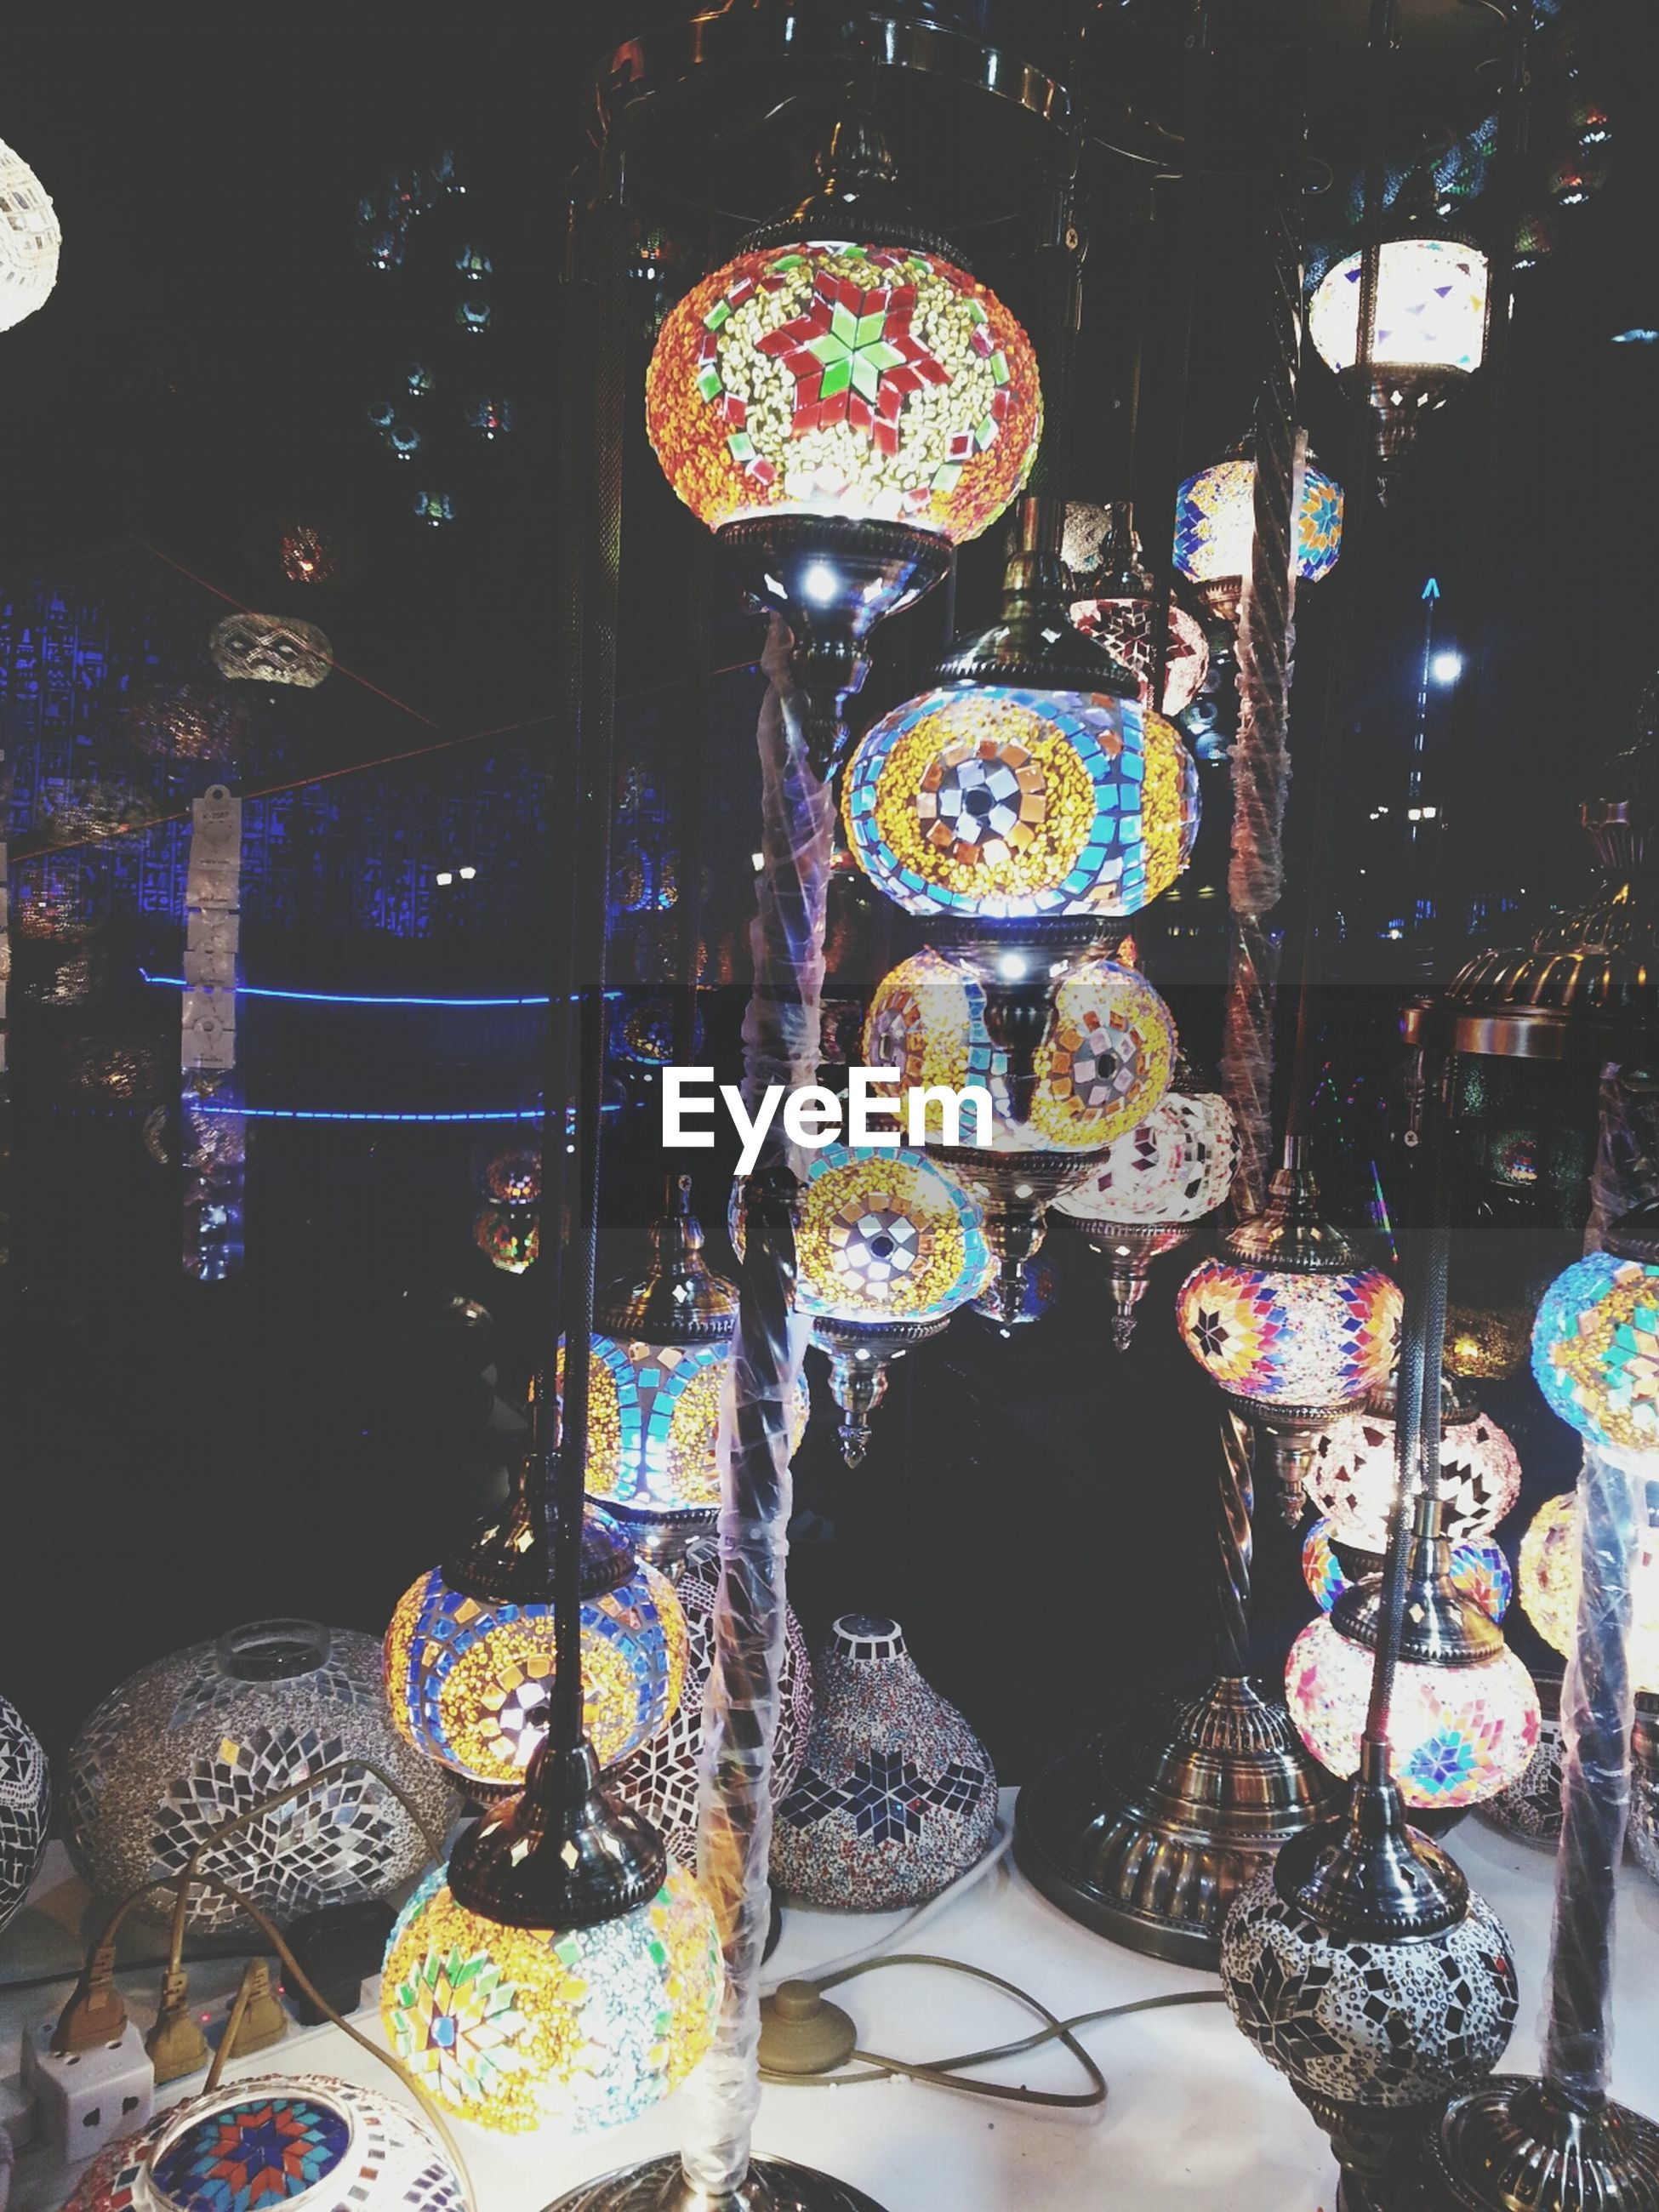 indoors, illuminated, night, decoration, hanging, lighting equipment, religion, celebration, arts culture and entertainment, built structure, tradition, art and craft, multi colored, retail, art, place of worship, cultures, creativity, person